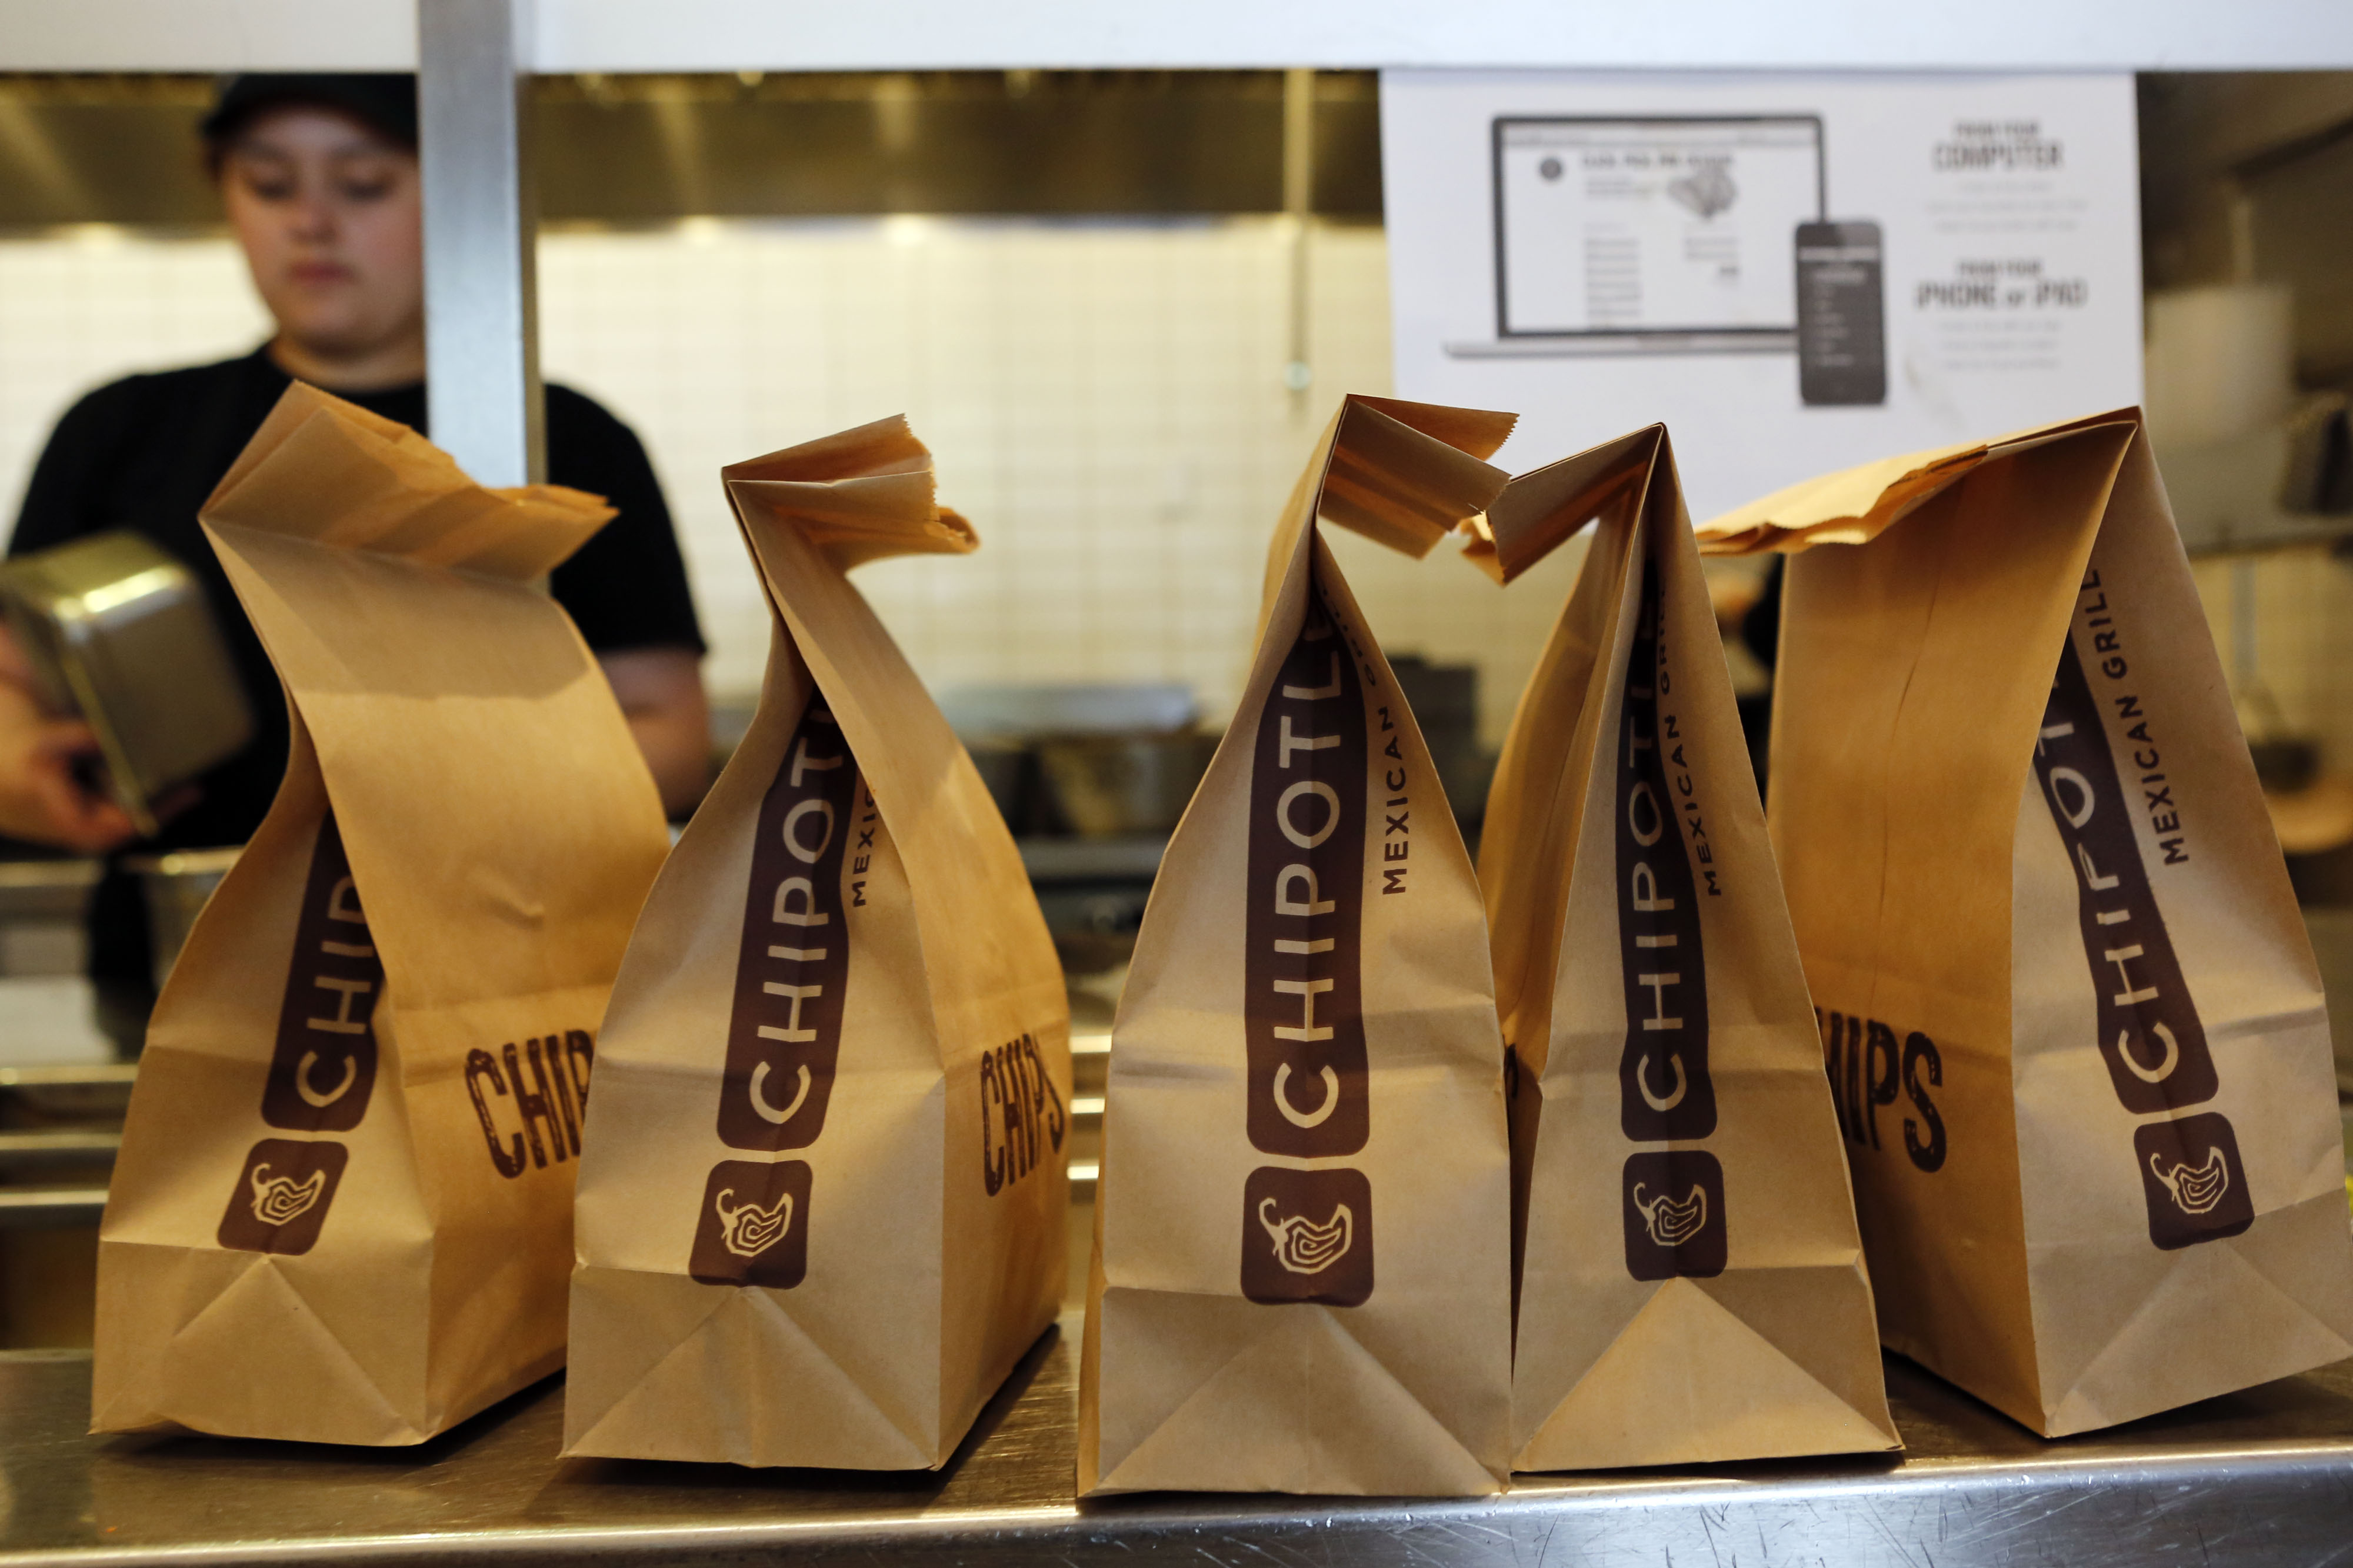 Bags of tortilla chips sit in a row at a Chipotle Mexican Grill Inc. restaurant in Hollywood, California on July 16, 2013.